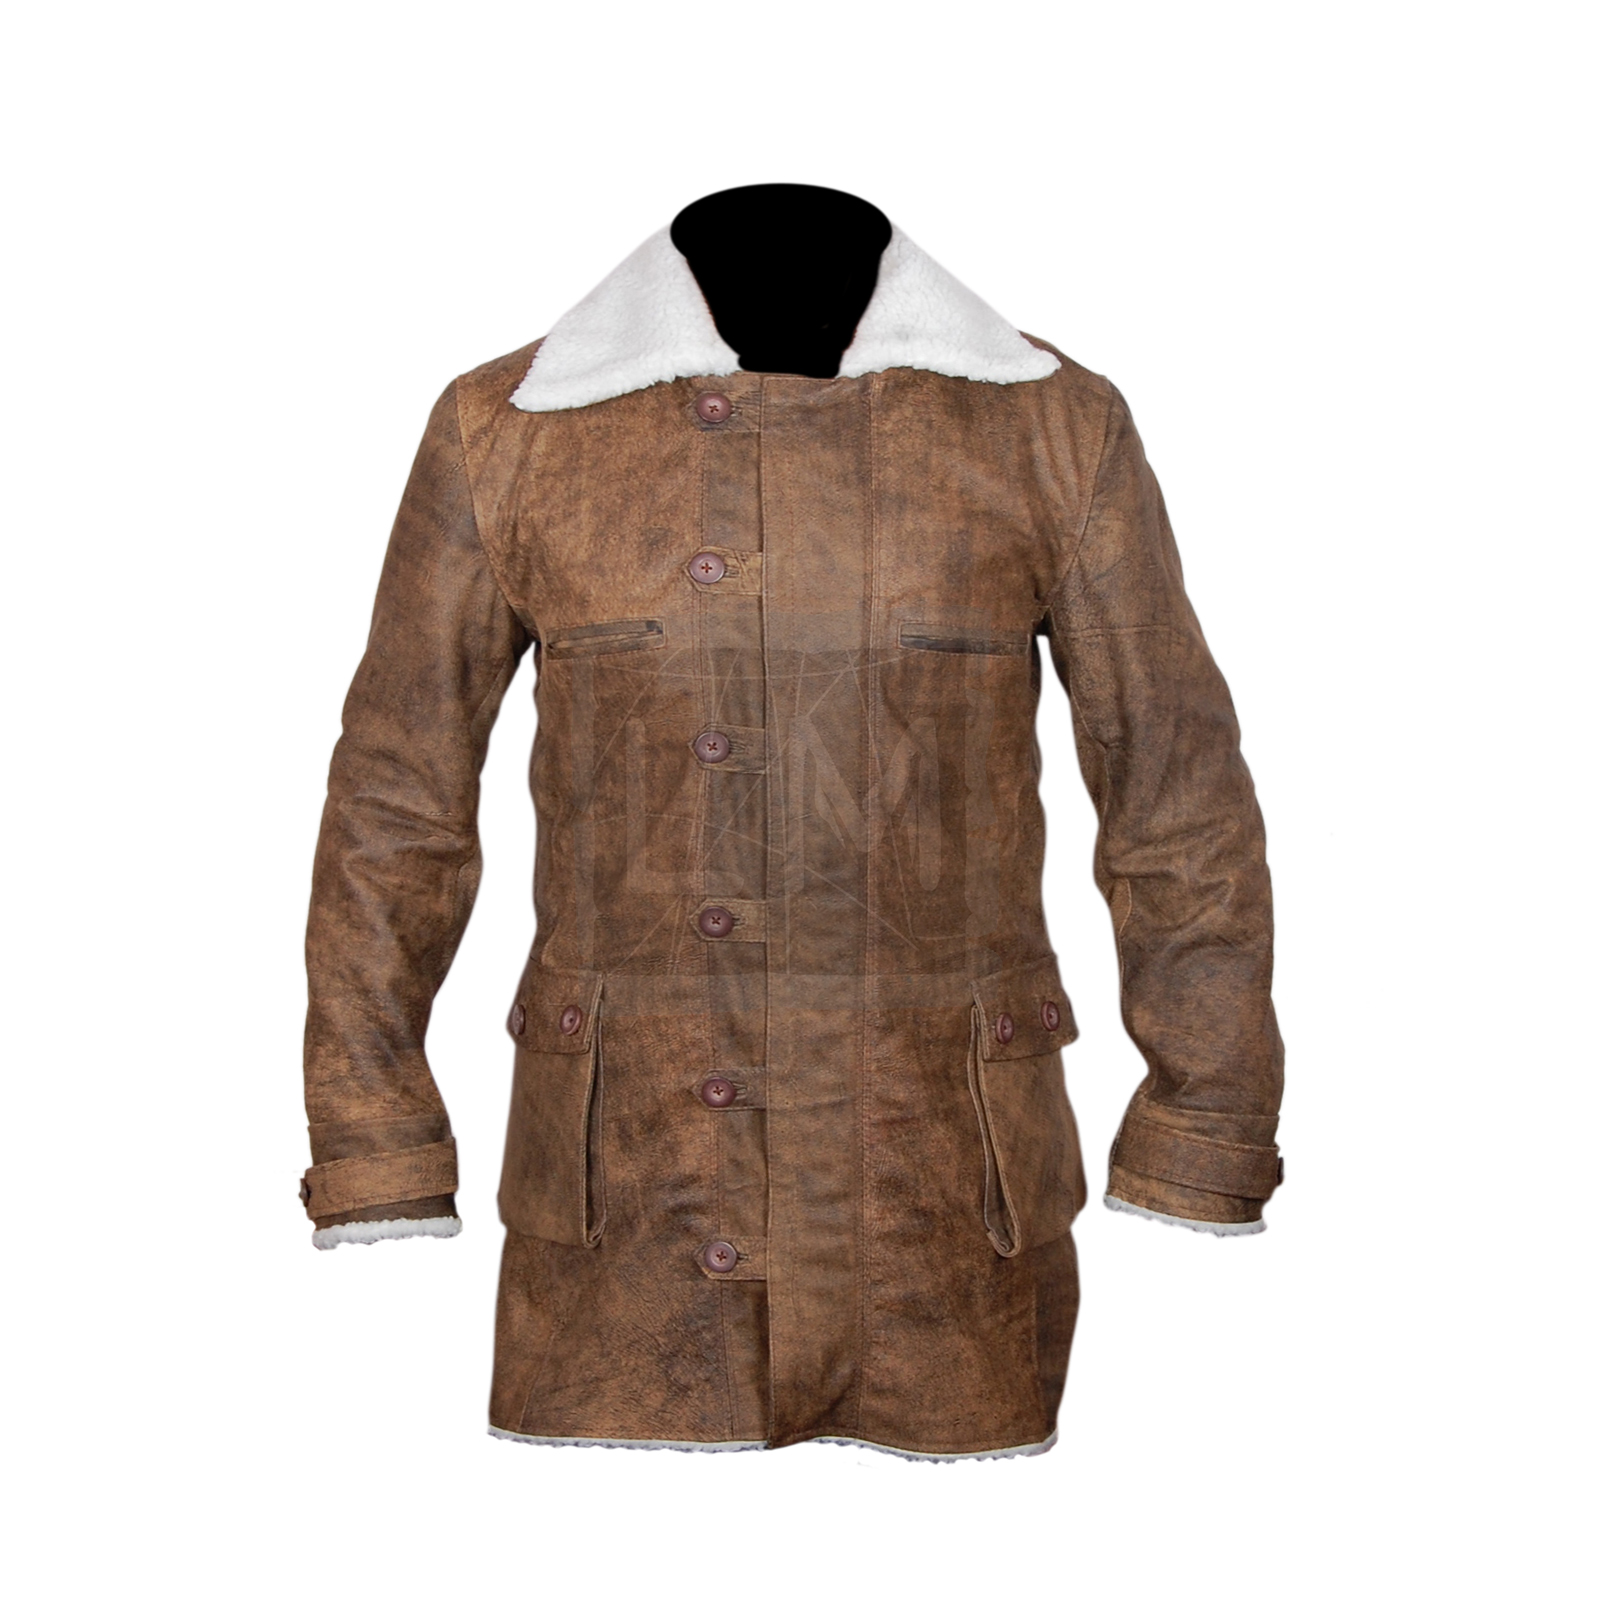 New Bane Coat Disstressed 1